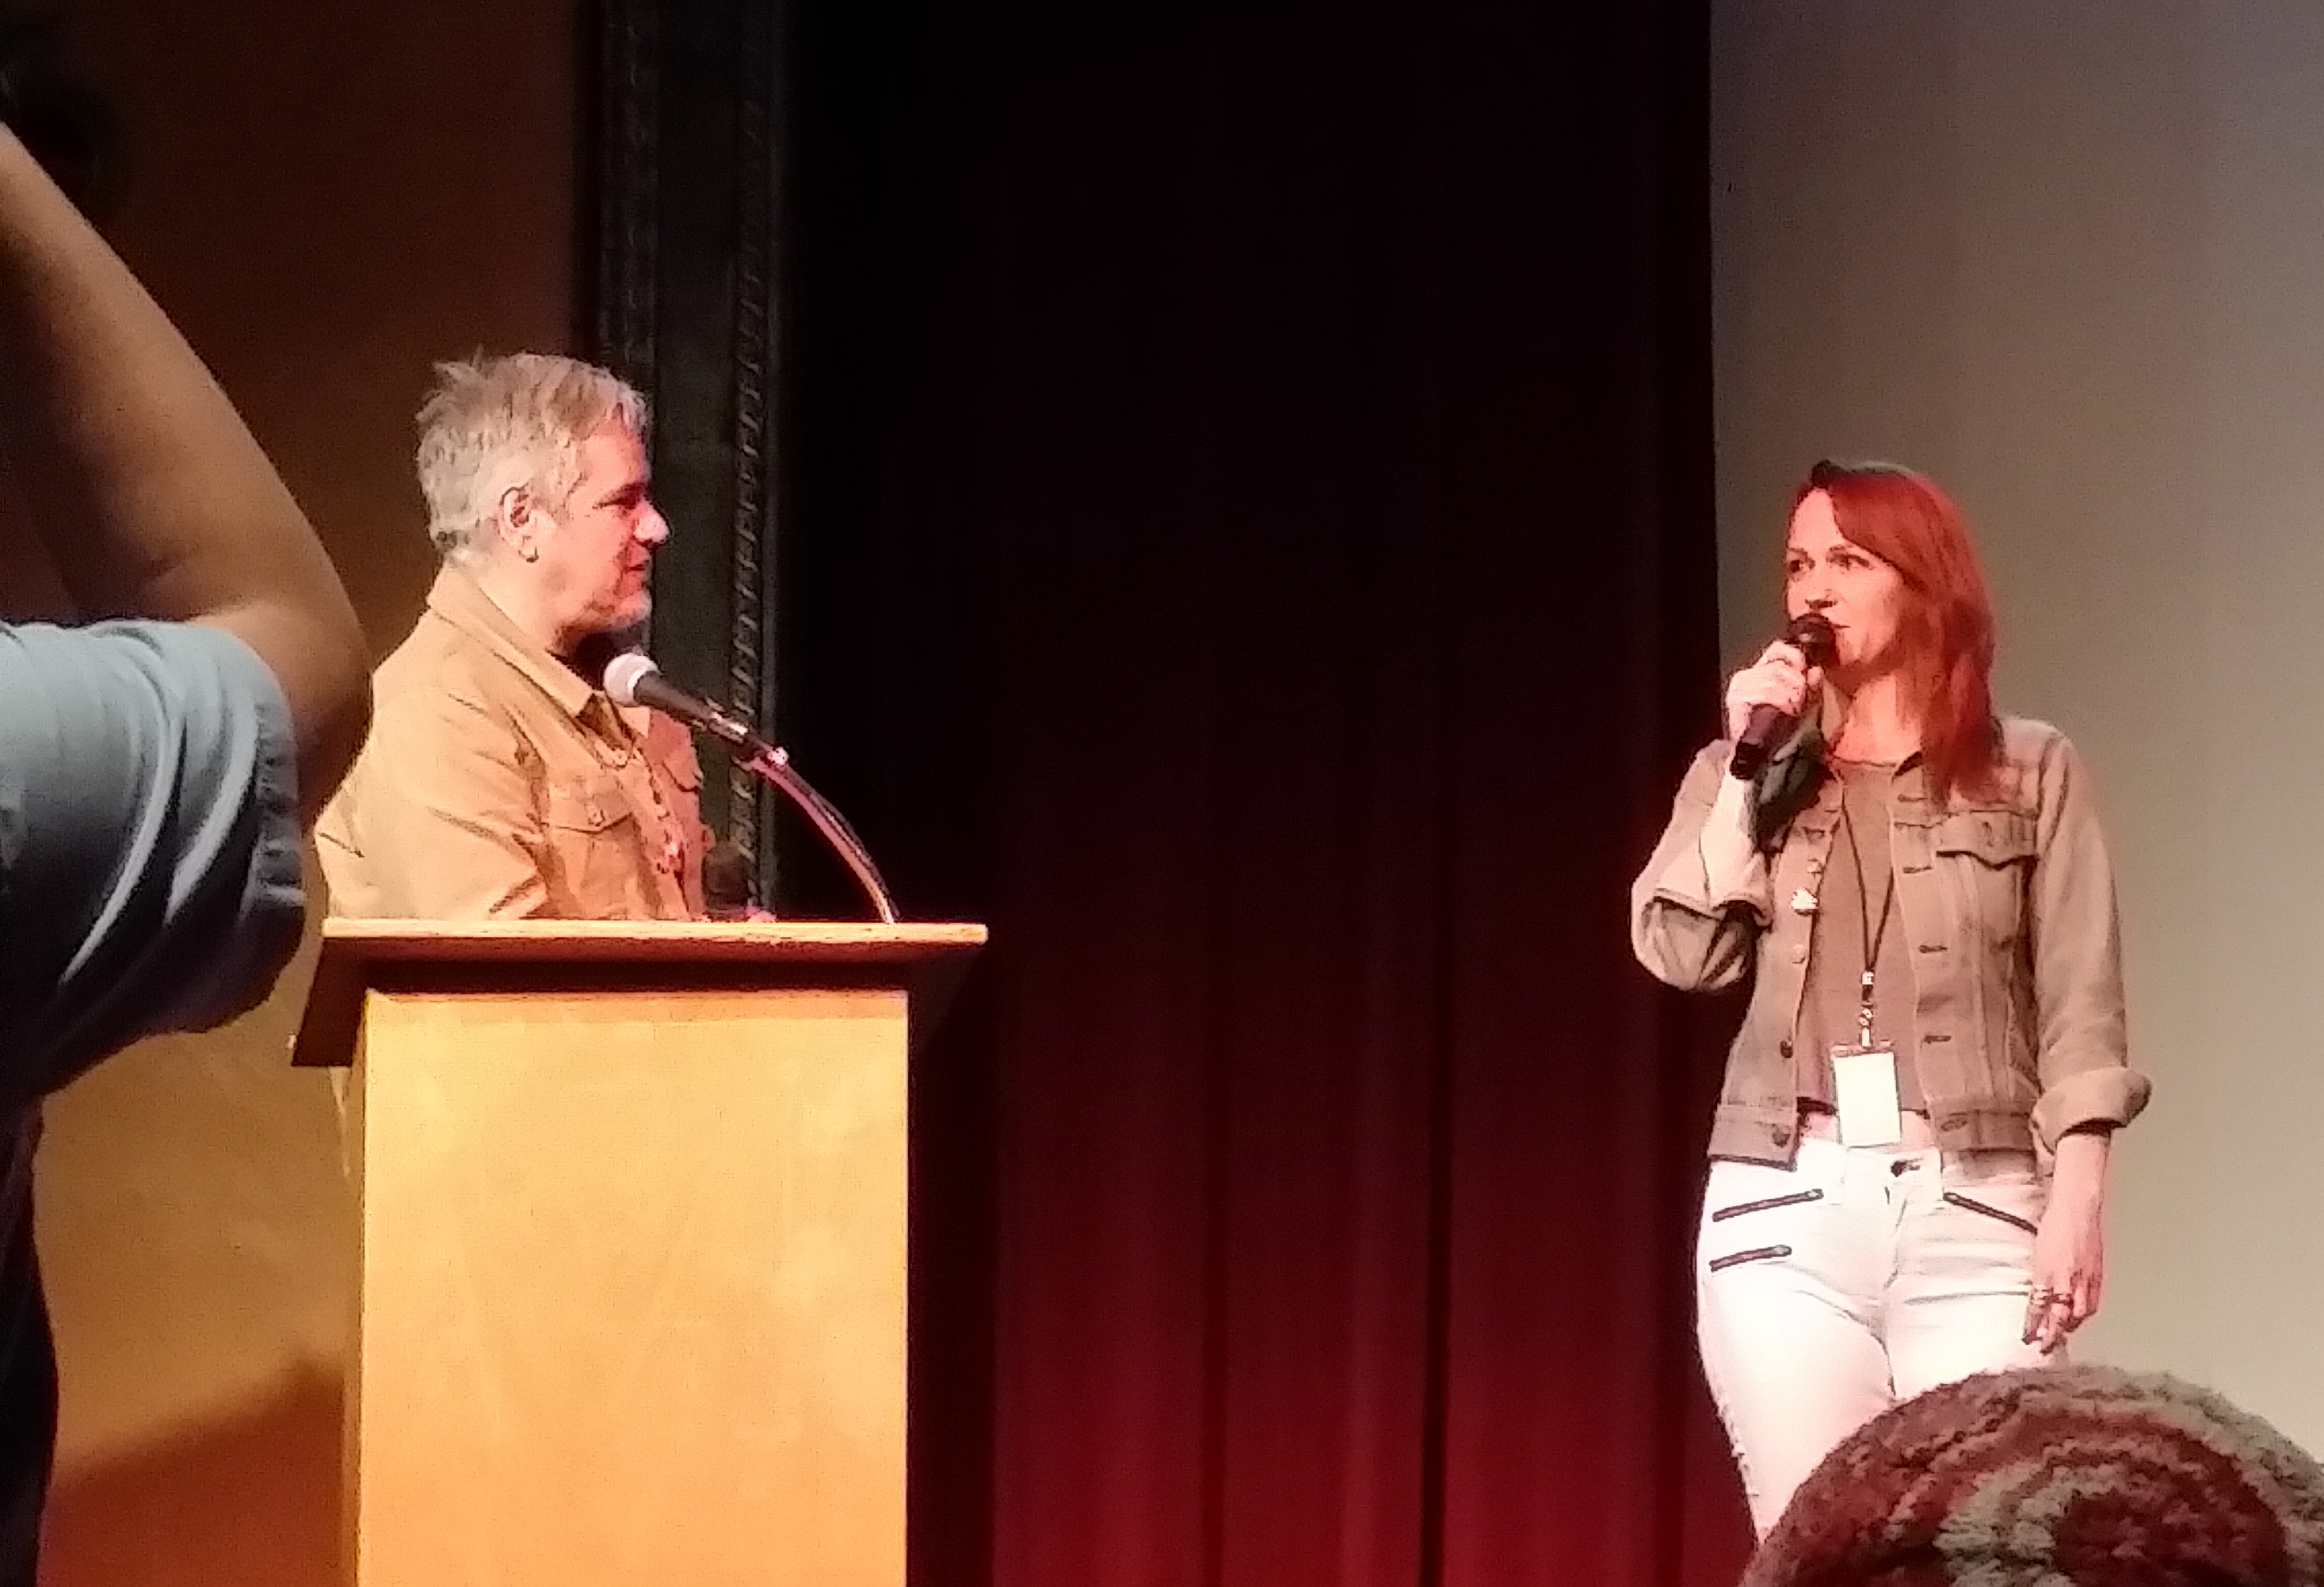 Director Angela Boatwright participates in a post-screening Q&A. Photo by Kurt Gardner.